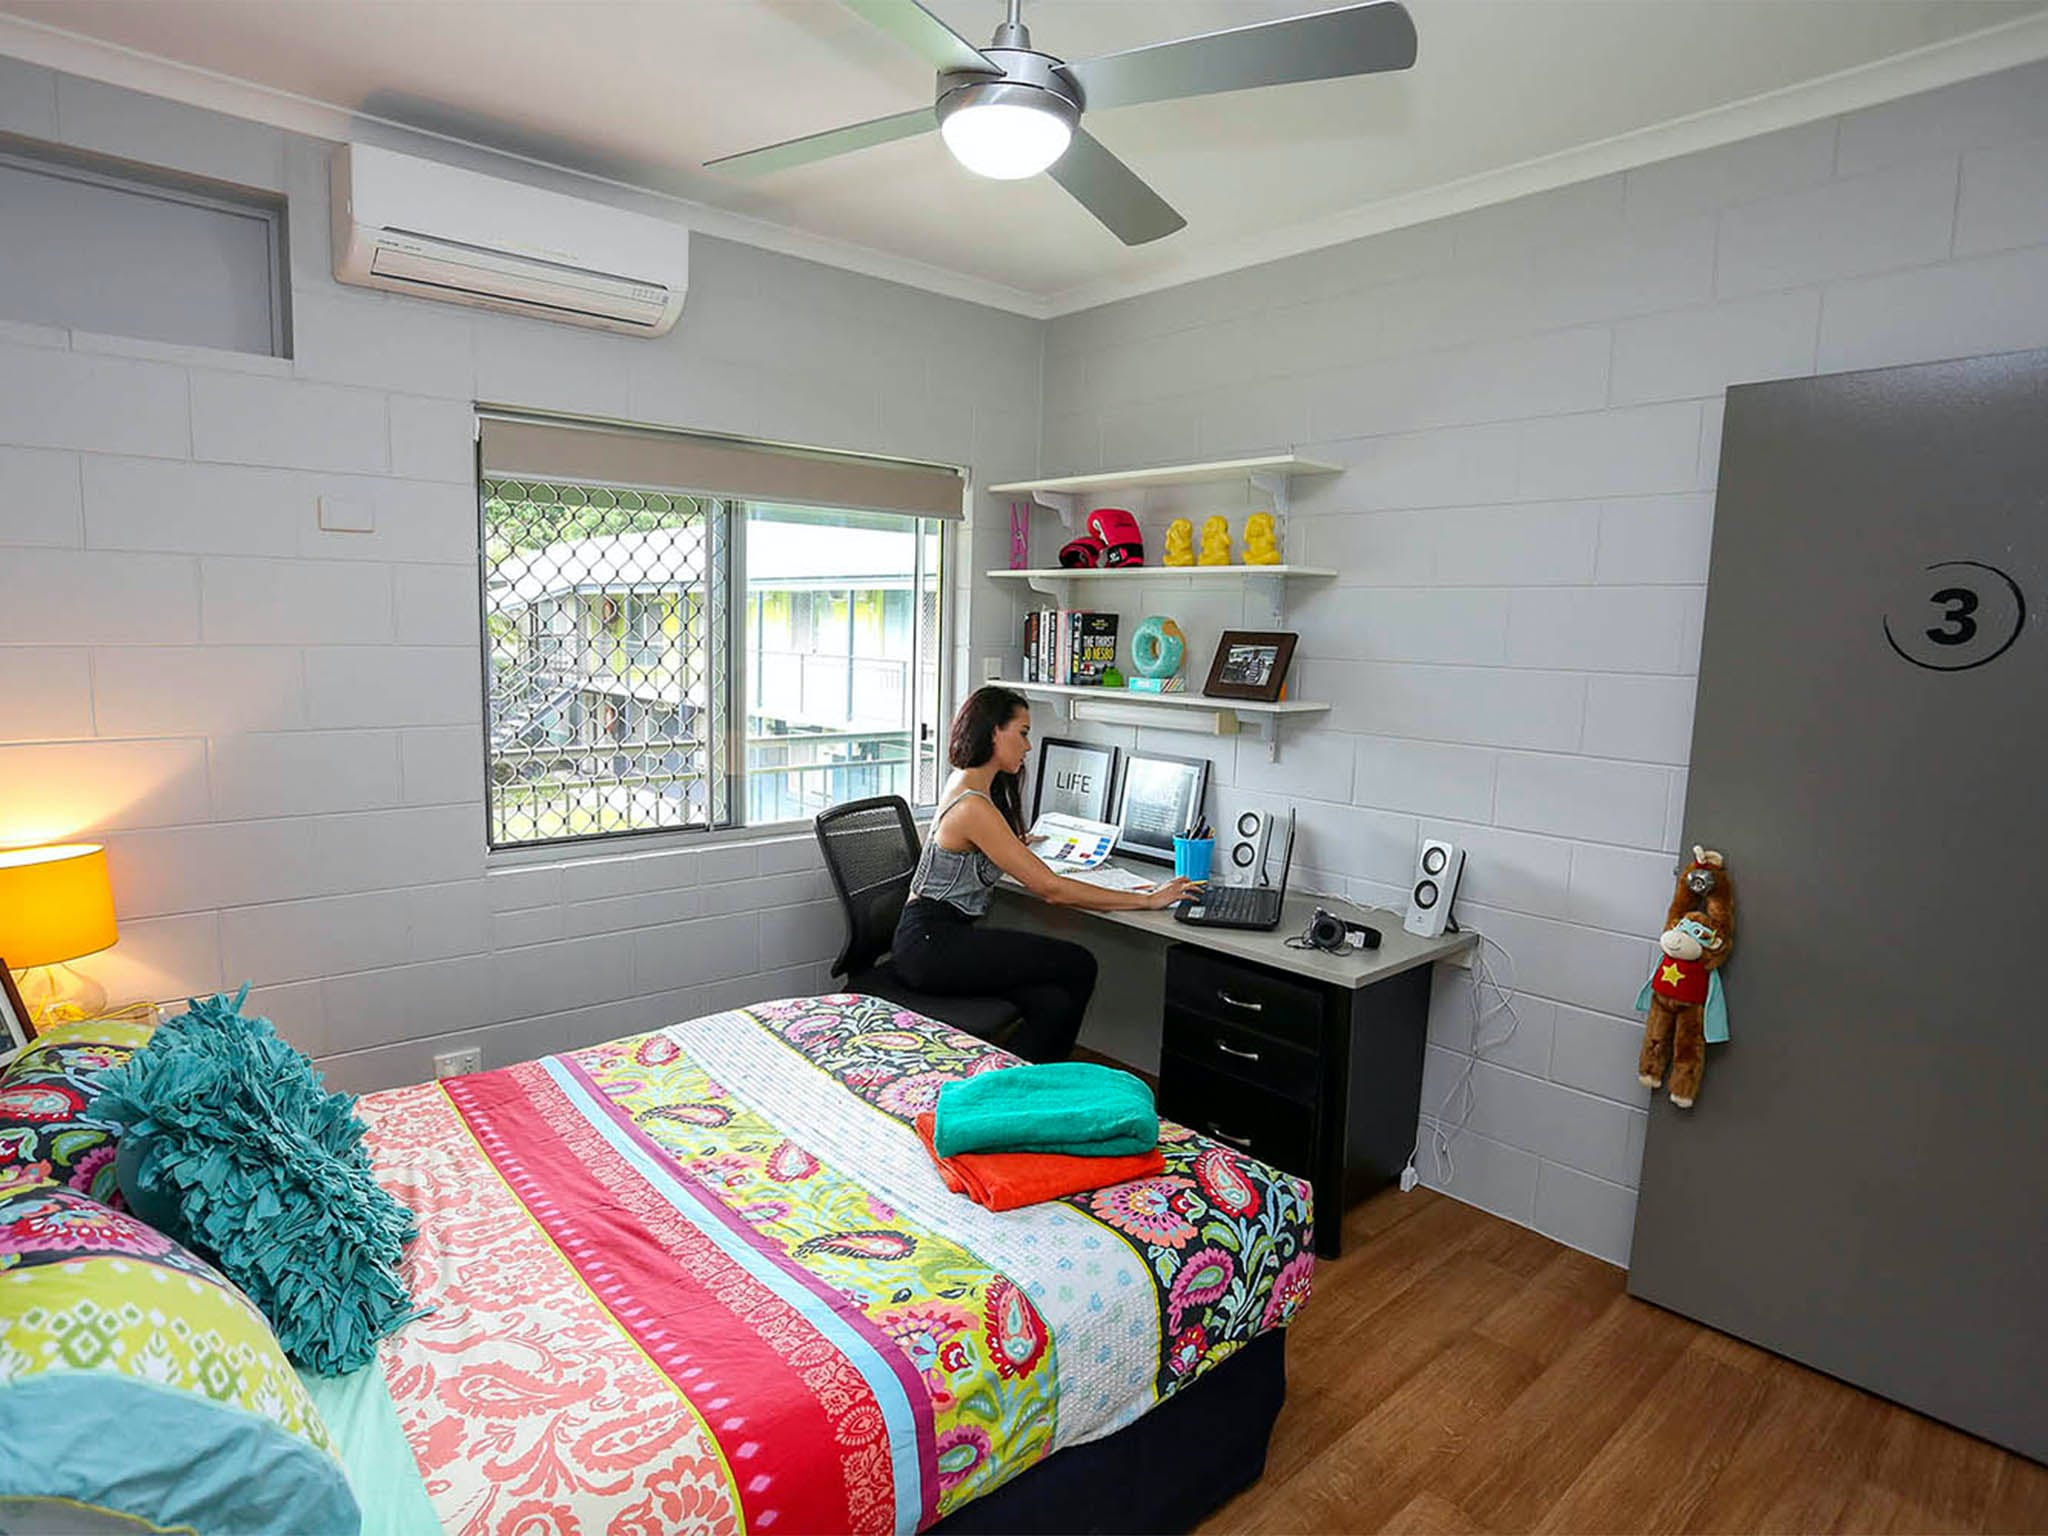 Cairns Student Lodge - Accommodation in Bendigo